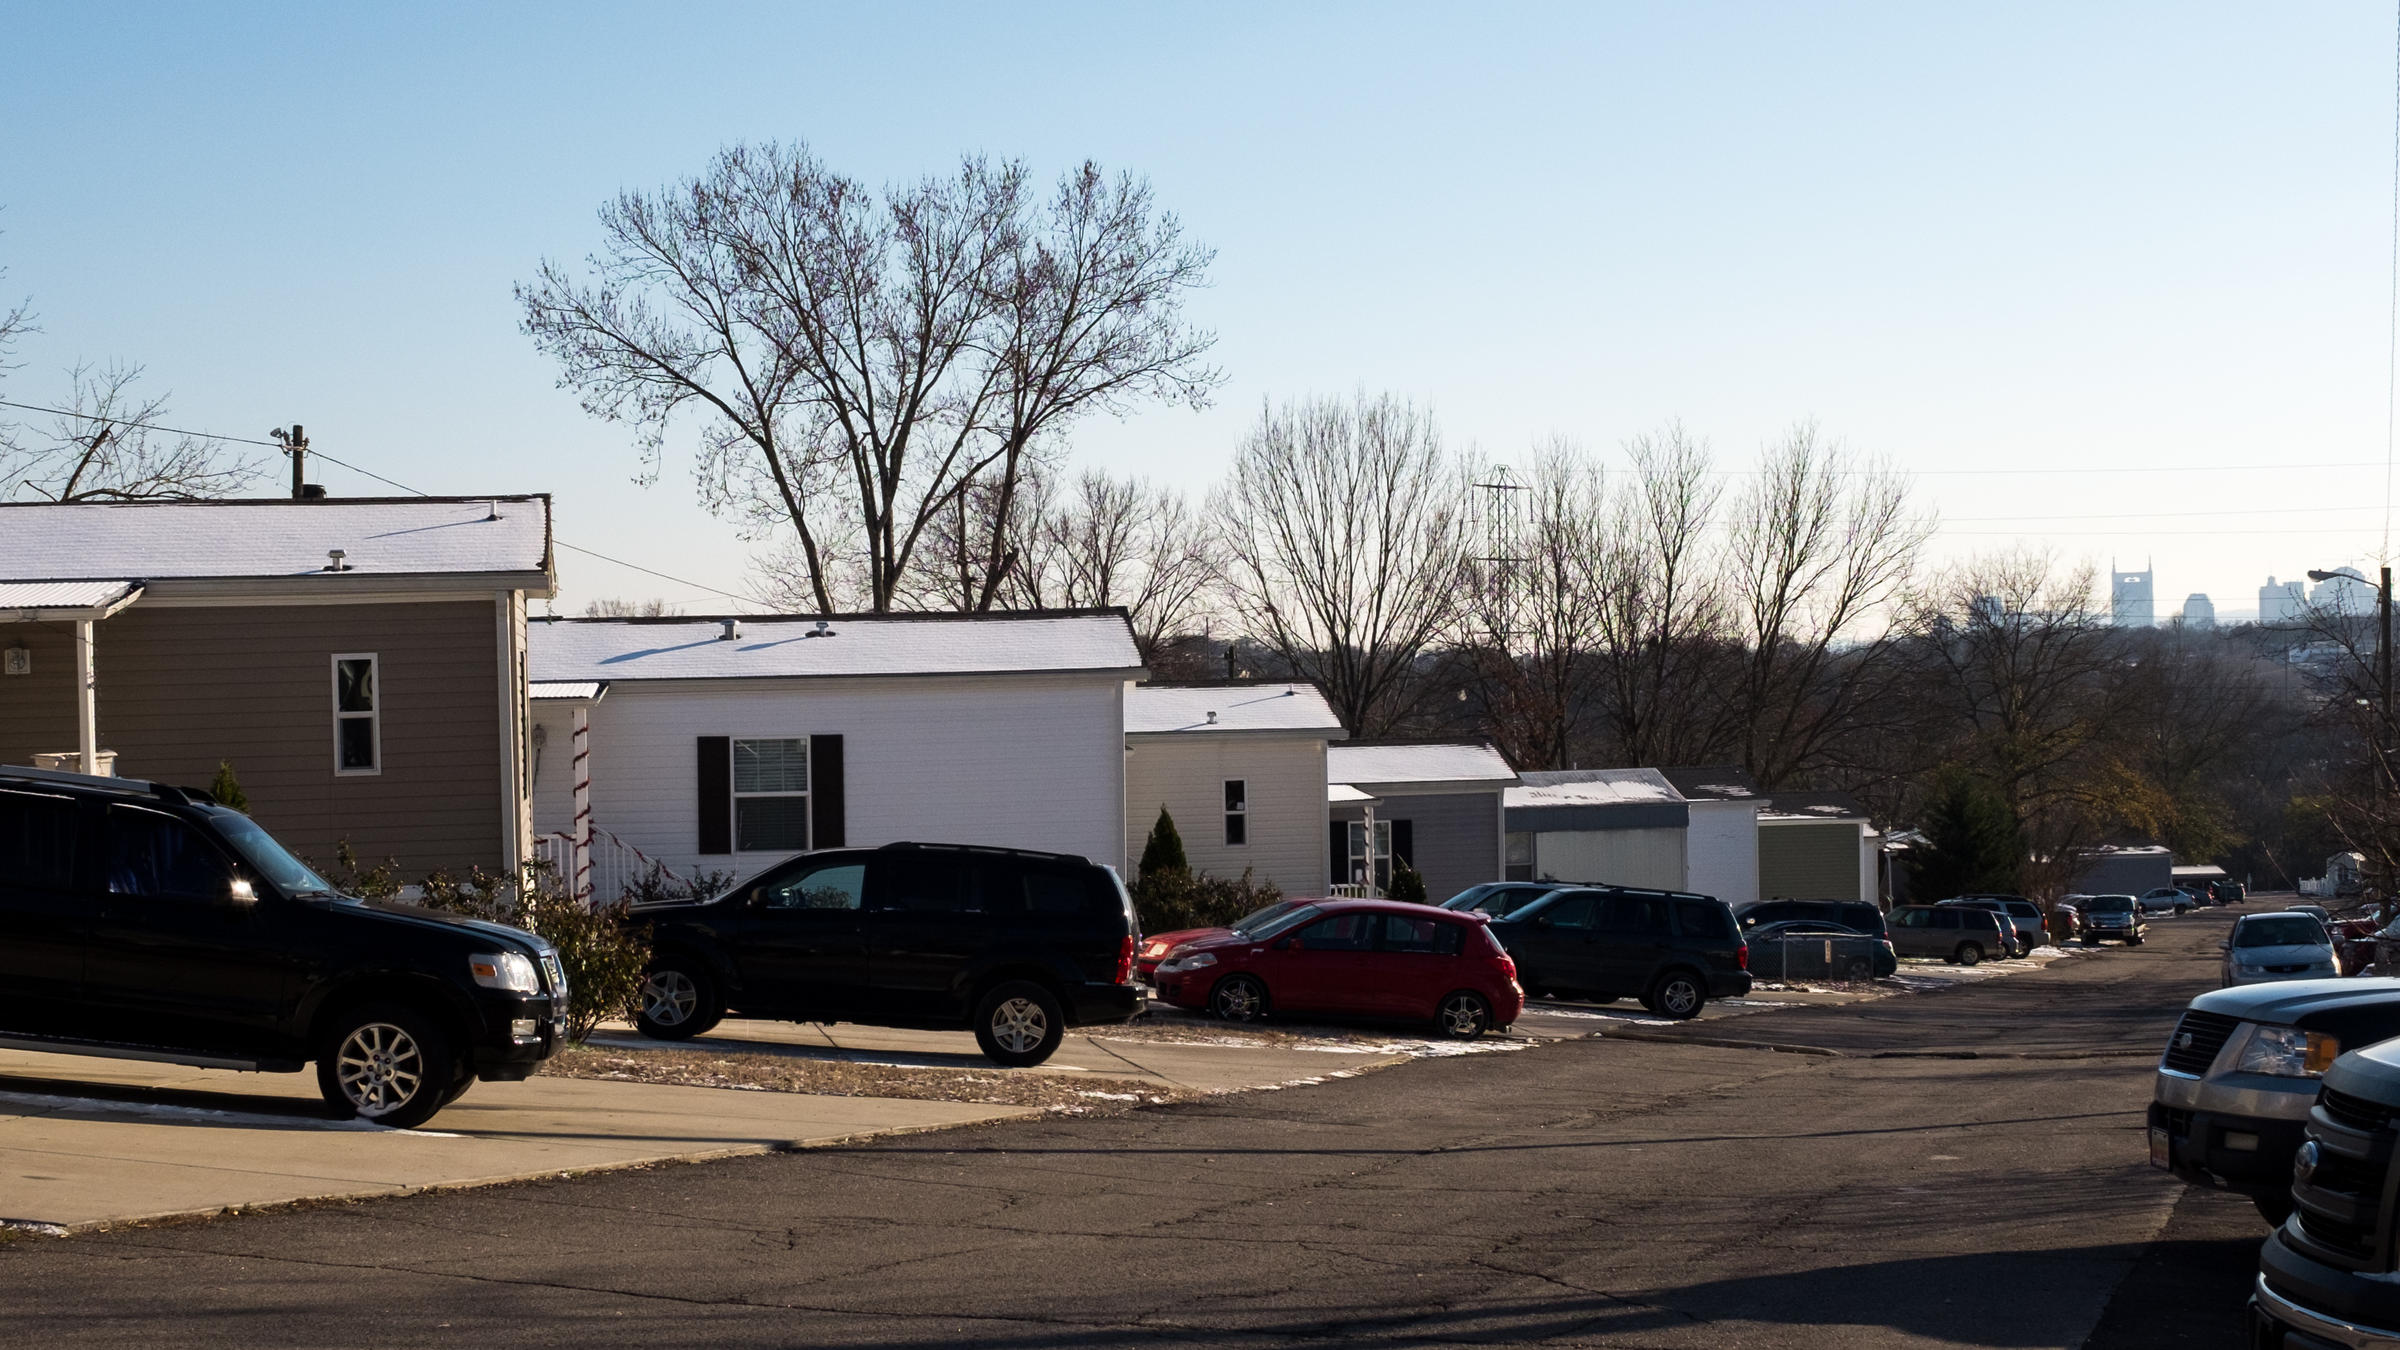 As Nashville Rents Rise Mobile Home Parks Are Expanding A Viable Option Of Affordable Housing Stock But With Few Legal Protections Residents Can Feel